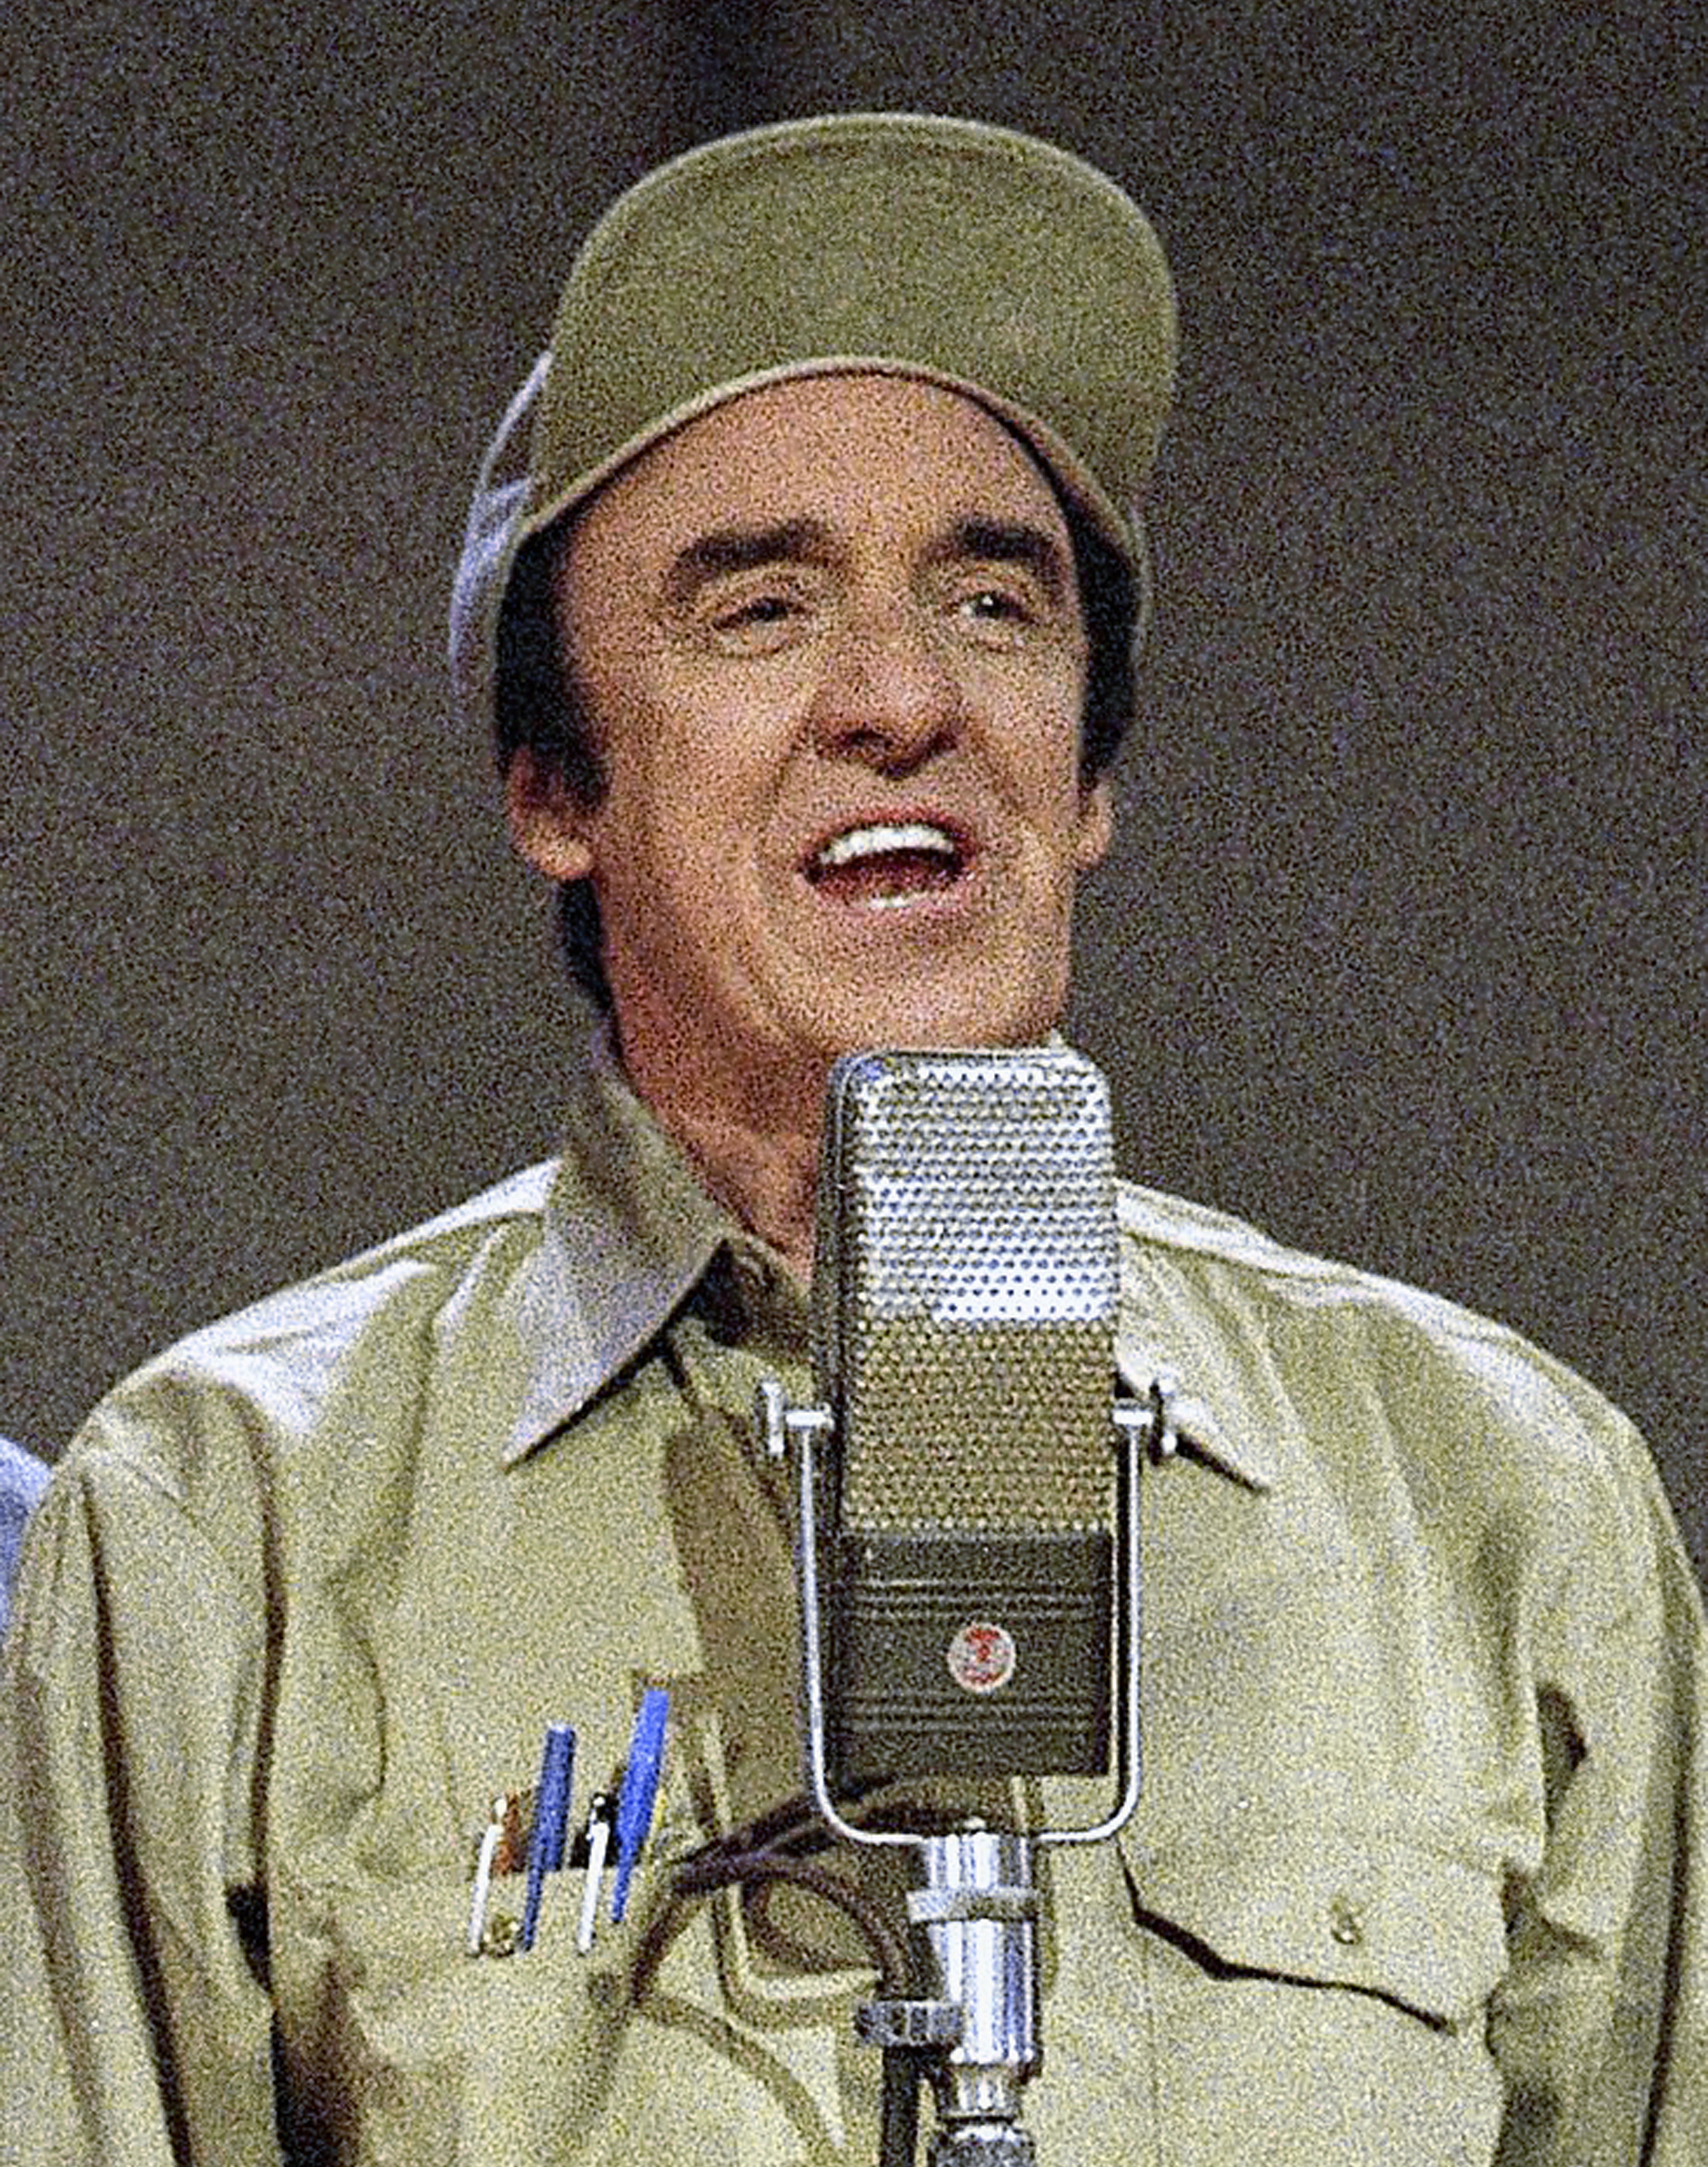 <div class='meta'><div class='origin-logo' data-origin='none'></div><span class='caption-text' data-credit='AP, File'>Jim Nabors, the actor who played Gomer Pyle on &#34;The Andy Griffith Show,&#34; shown here in 1992, passed away on Nov. 30, 2017 at age 87.</span></div>